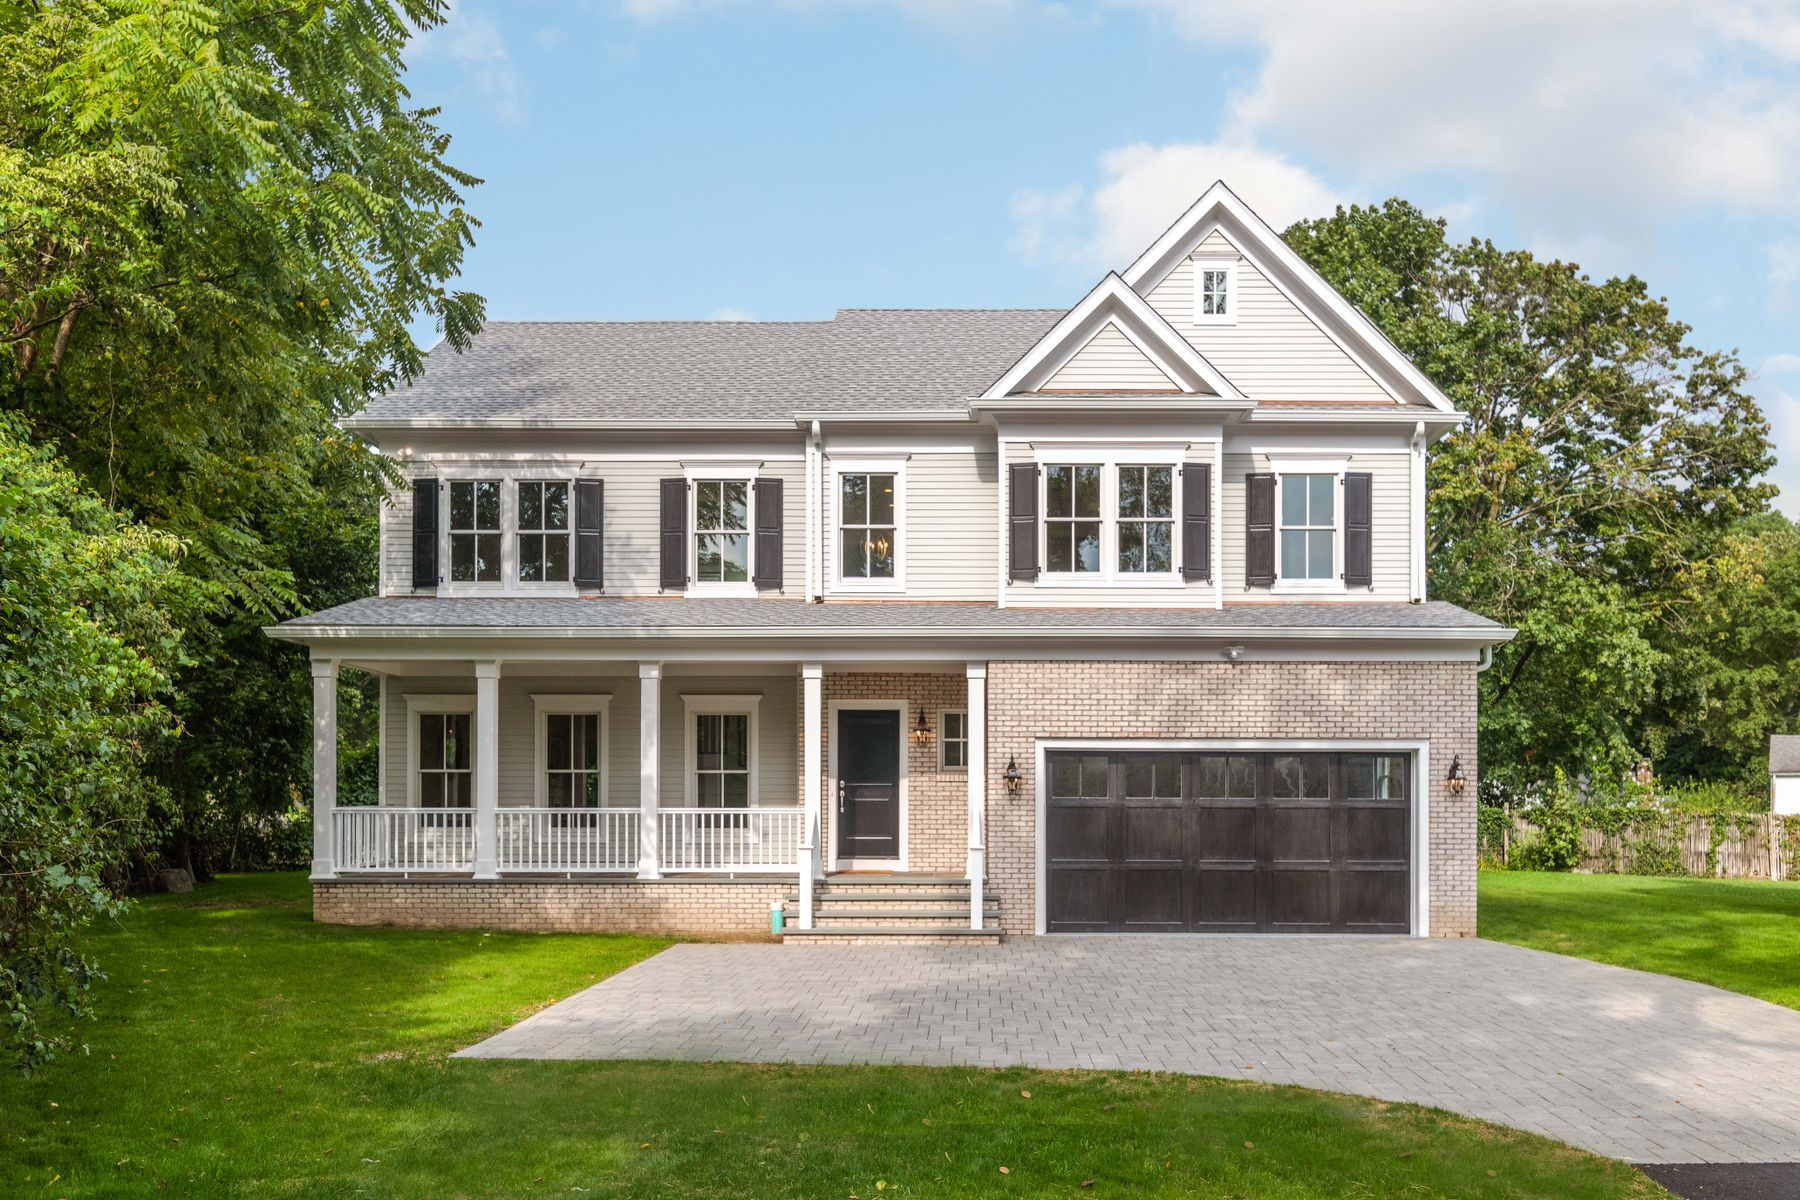 Single Family Homes for Active at Live abundantly in Old Greenwich 46 Sound Beach Avenue Old Greenwich, Connecticut 06870 United States